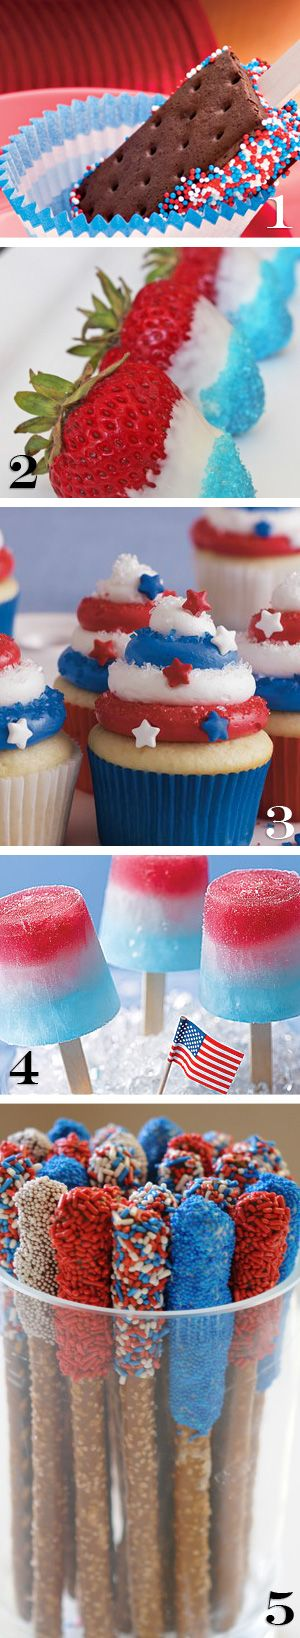 Fun Patriotic Desserts! Seem pretty simple and cute...